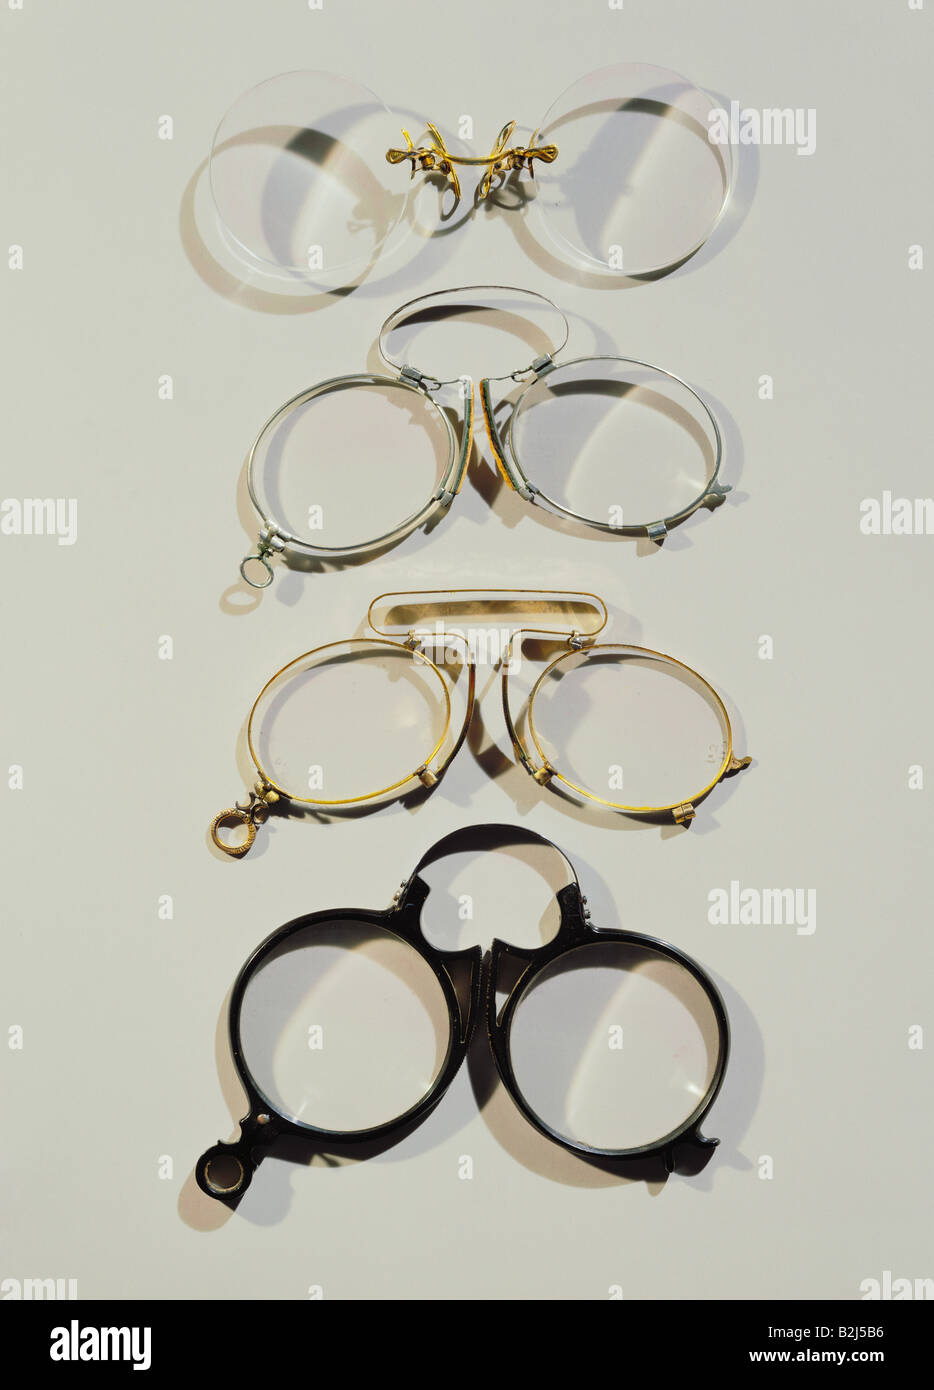 medicine, ophthalmology, glasses, four pince-nez with steel springs, circa 1900, Additional-Rights-Clearances-NA - Stock Image